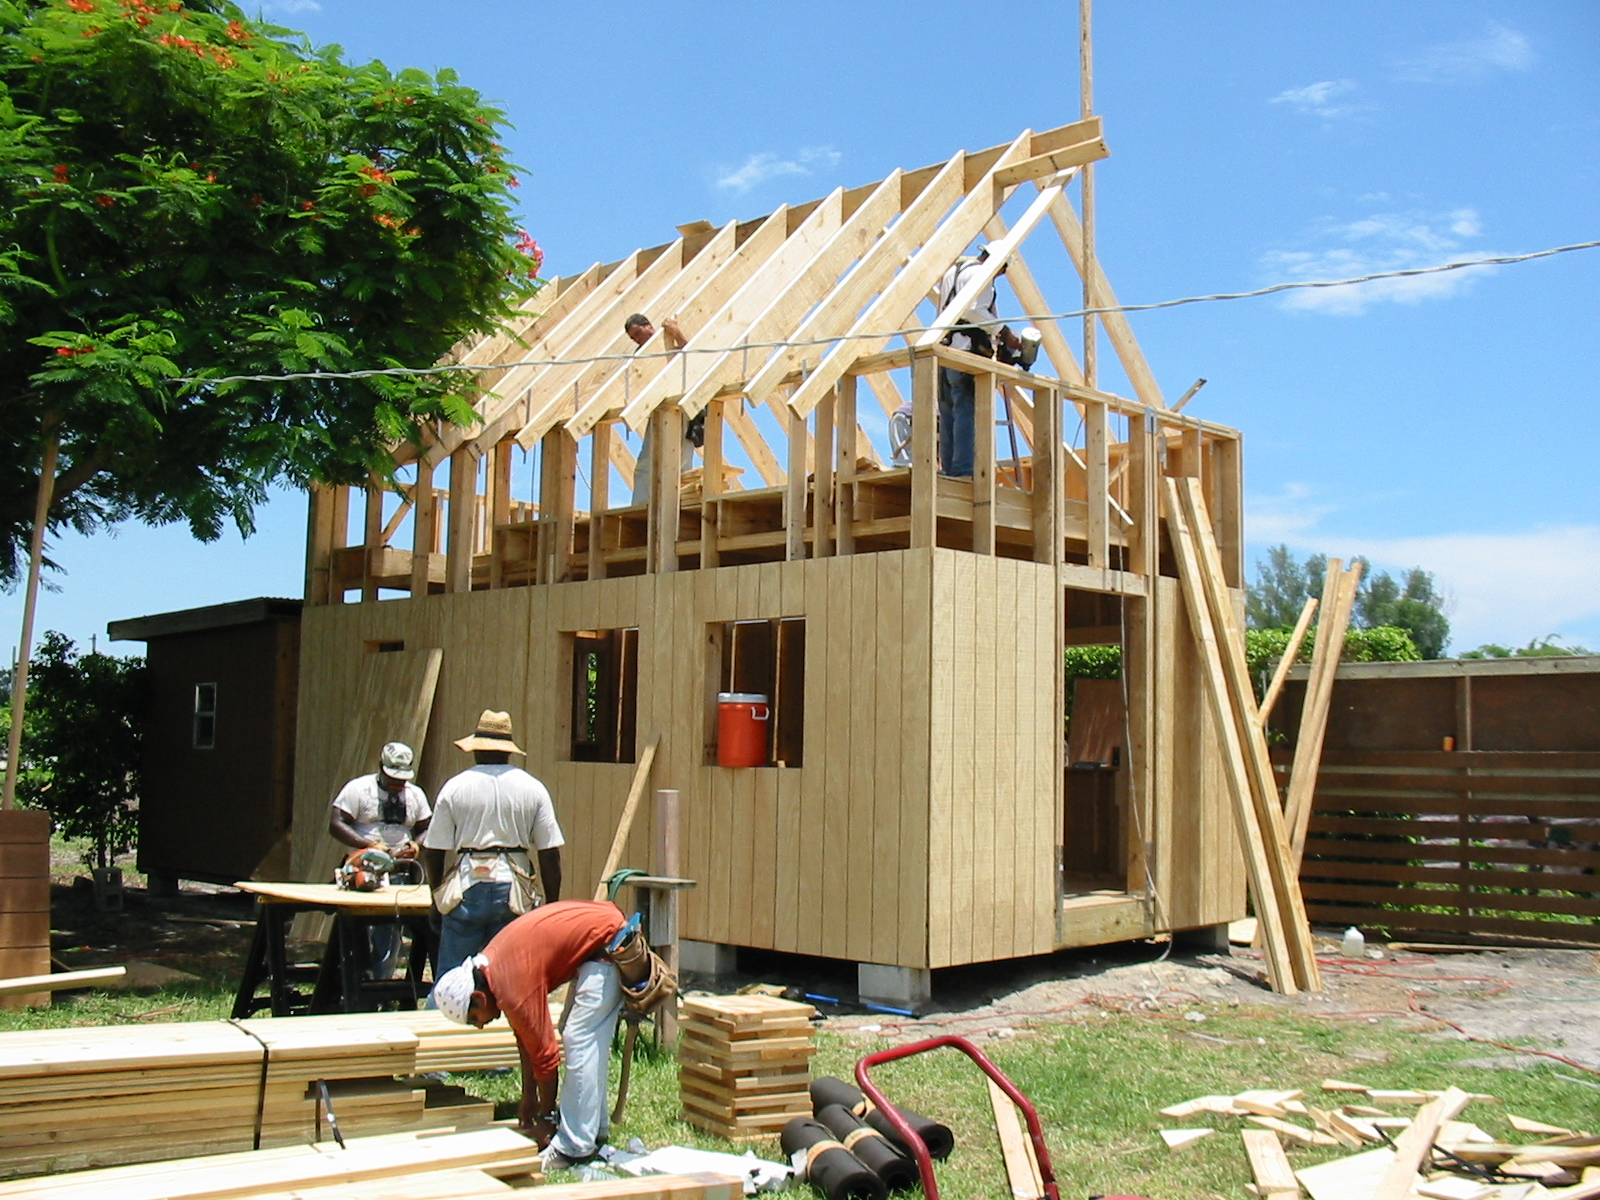 Keith is Building the 12x24 Homesteader's Cabin ...